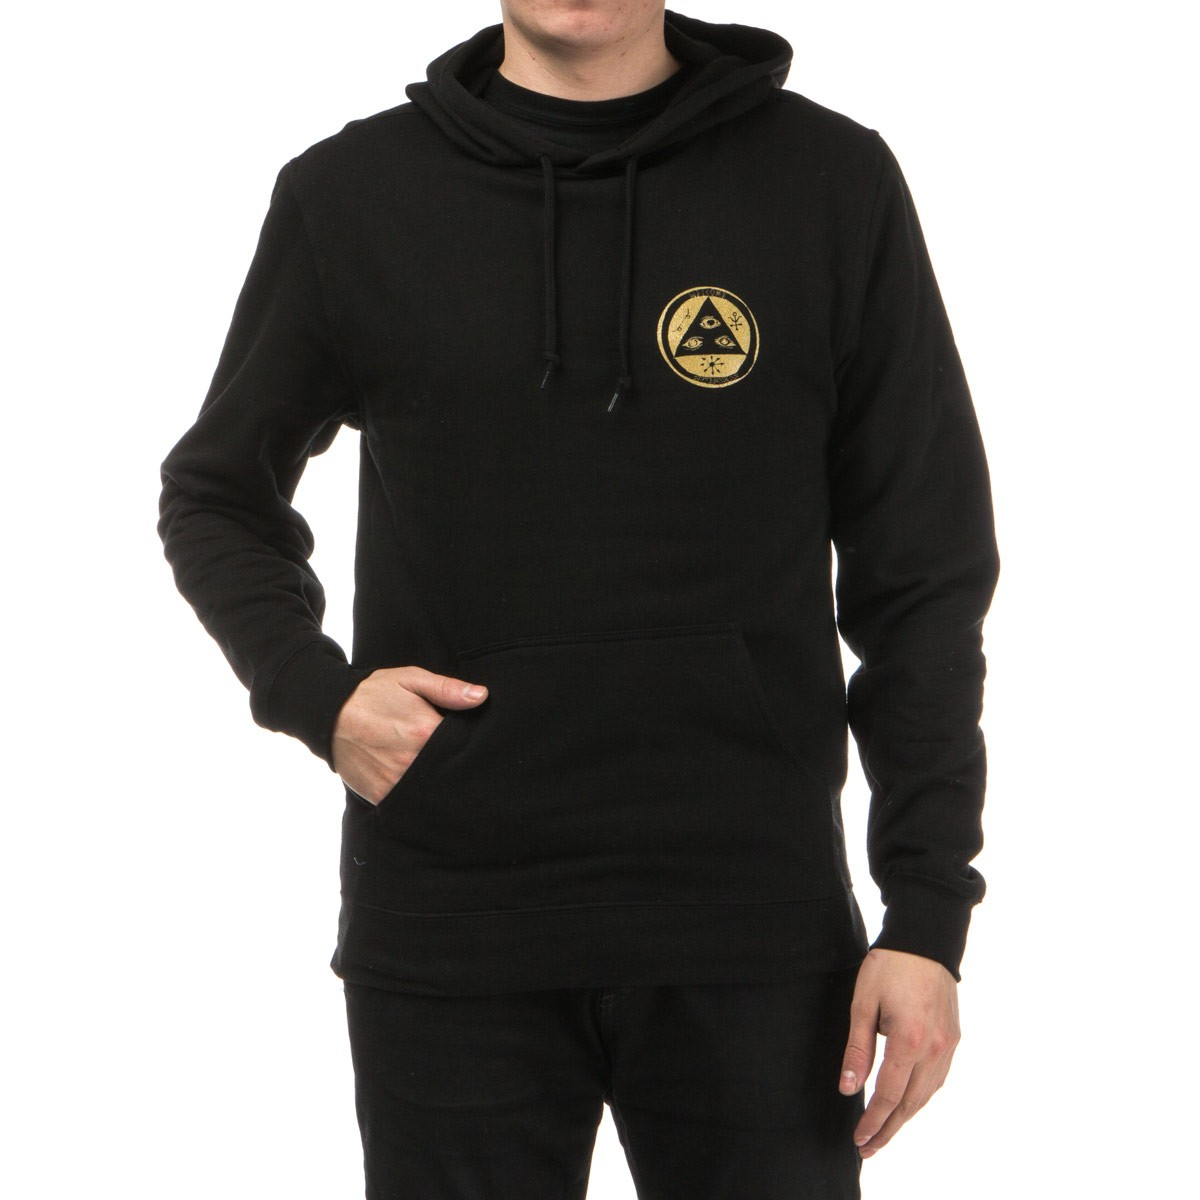 Golden Goat Lightweight Pullover Hoodie - Black/Gold